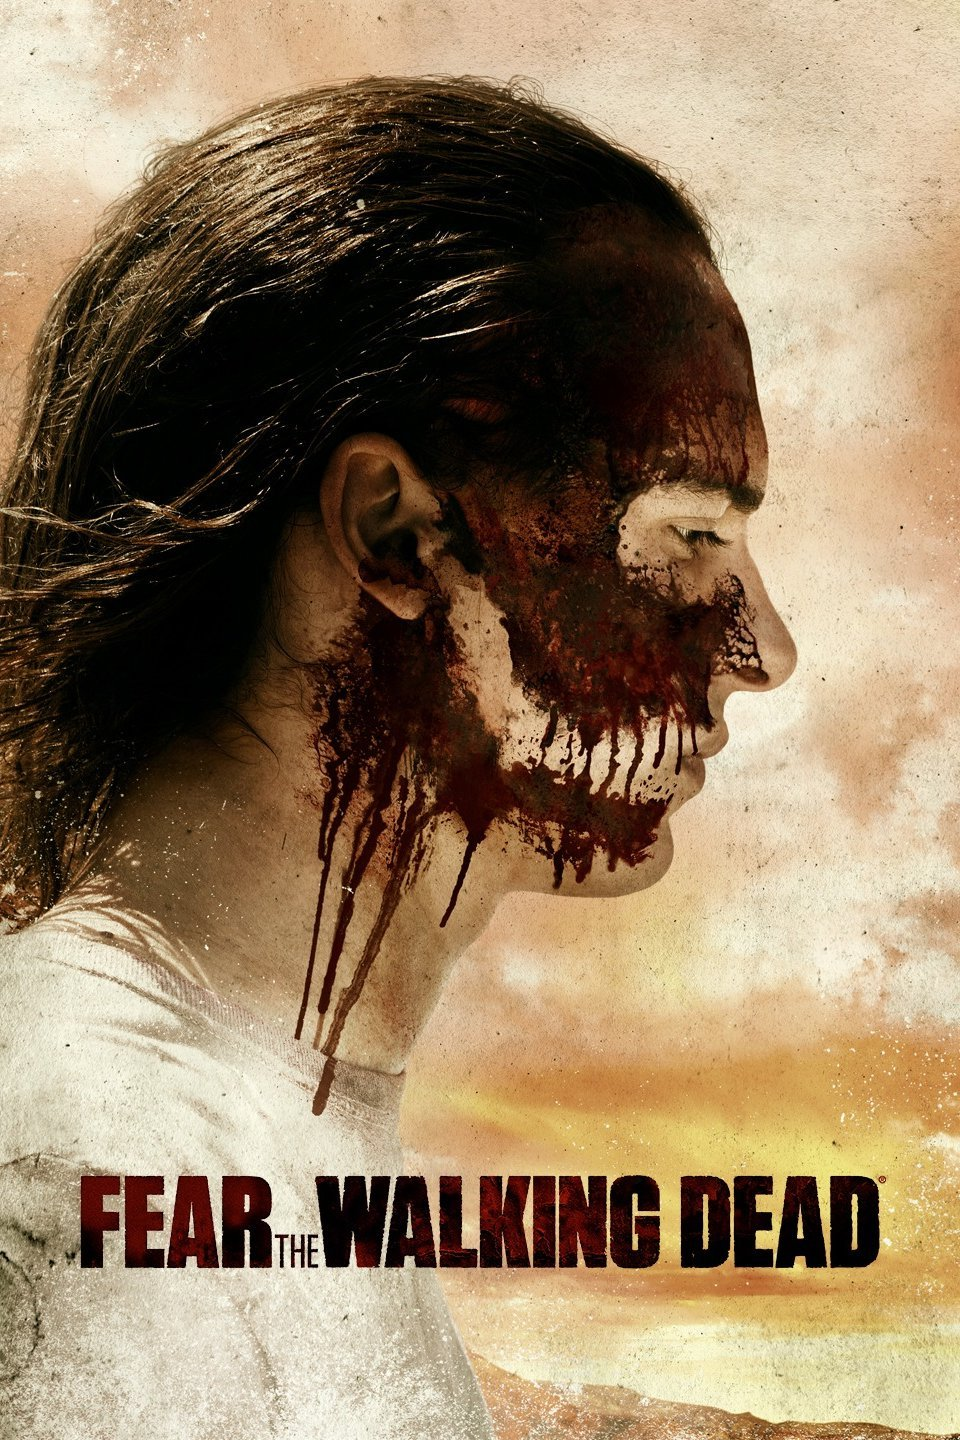 Fear the Walking Dead Season 3 Episode 2 Download HDTV 480p & 720p